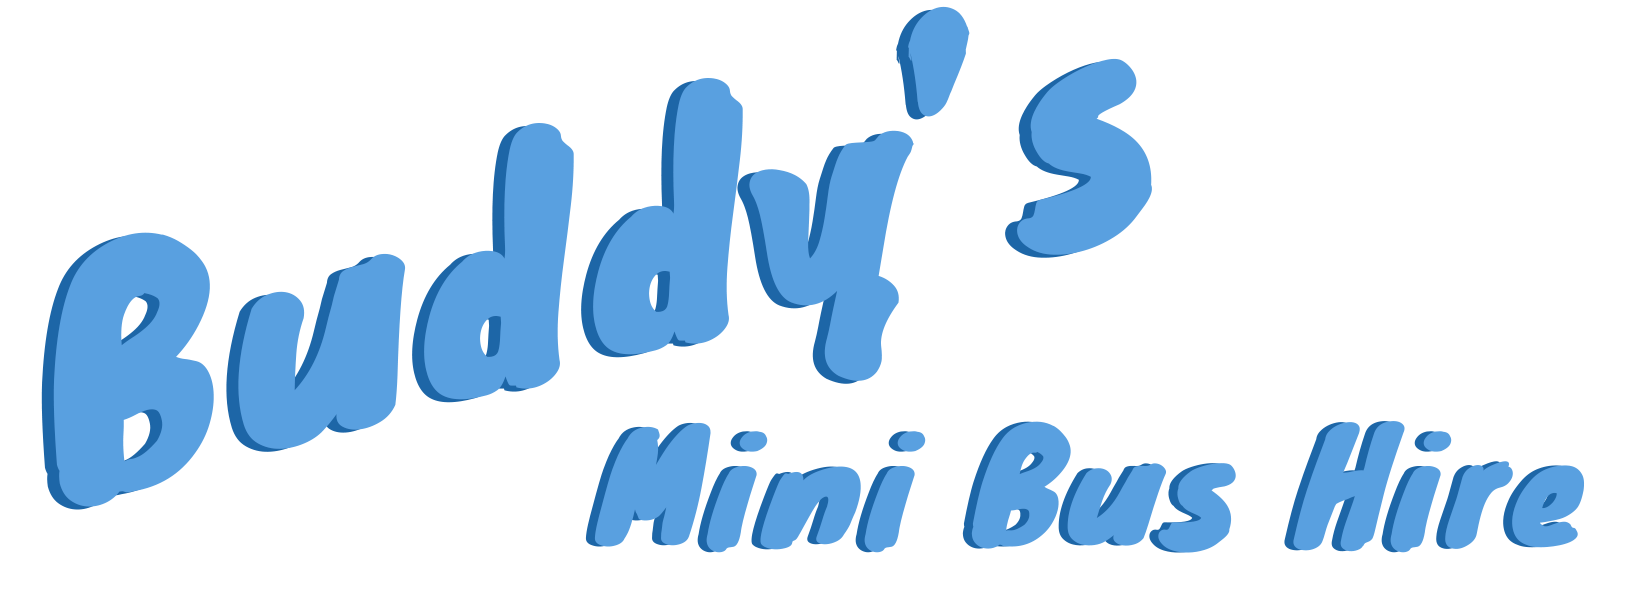 Buddy's mini bus hire Logo